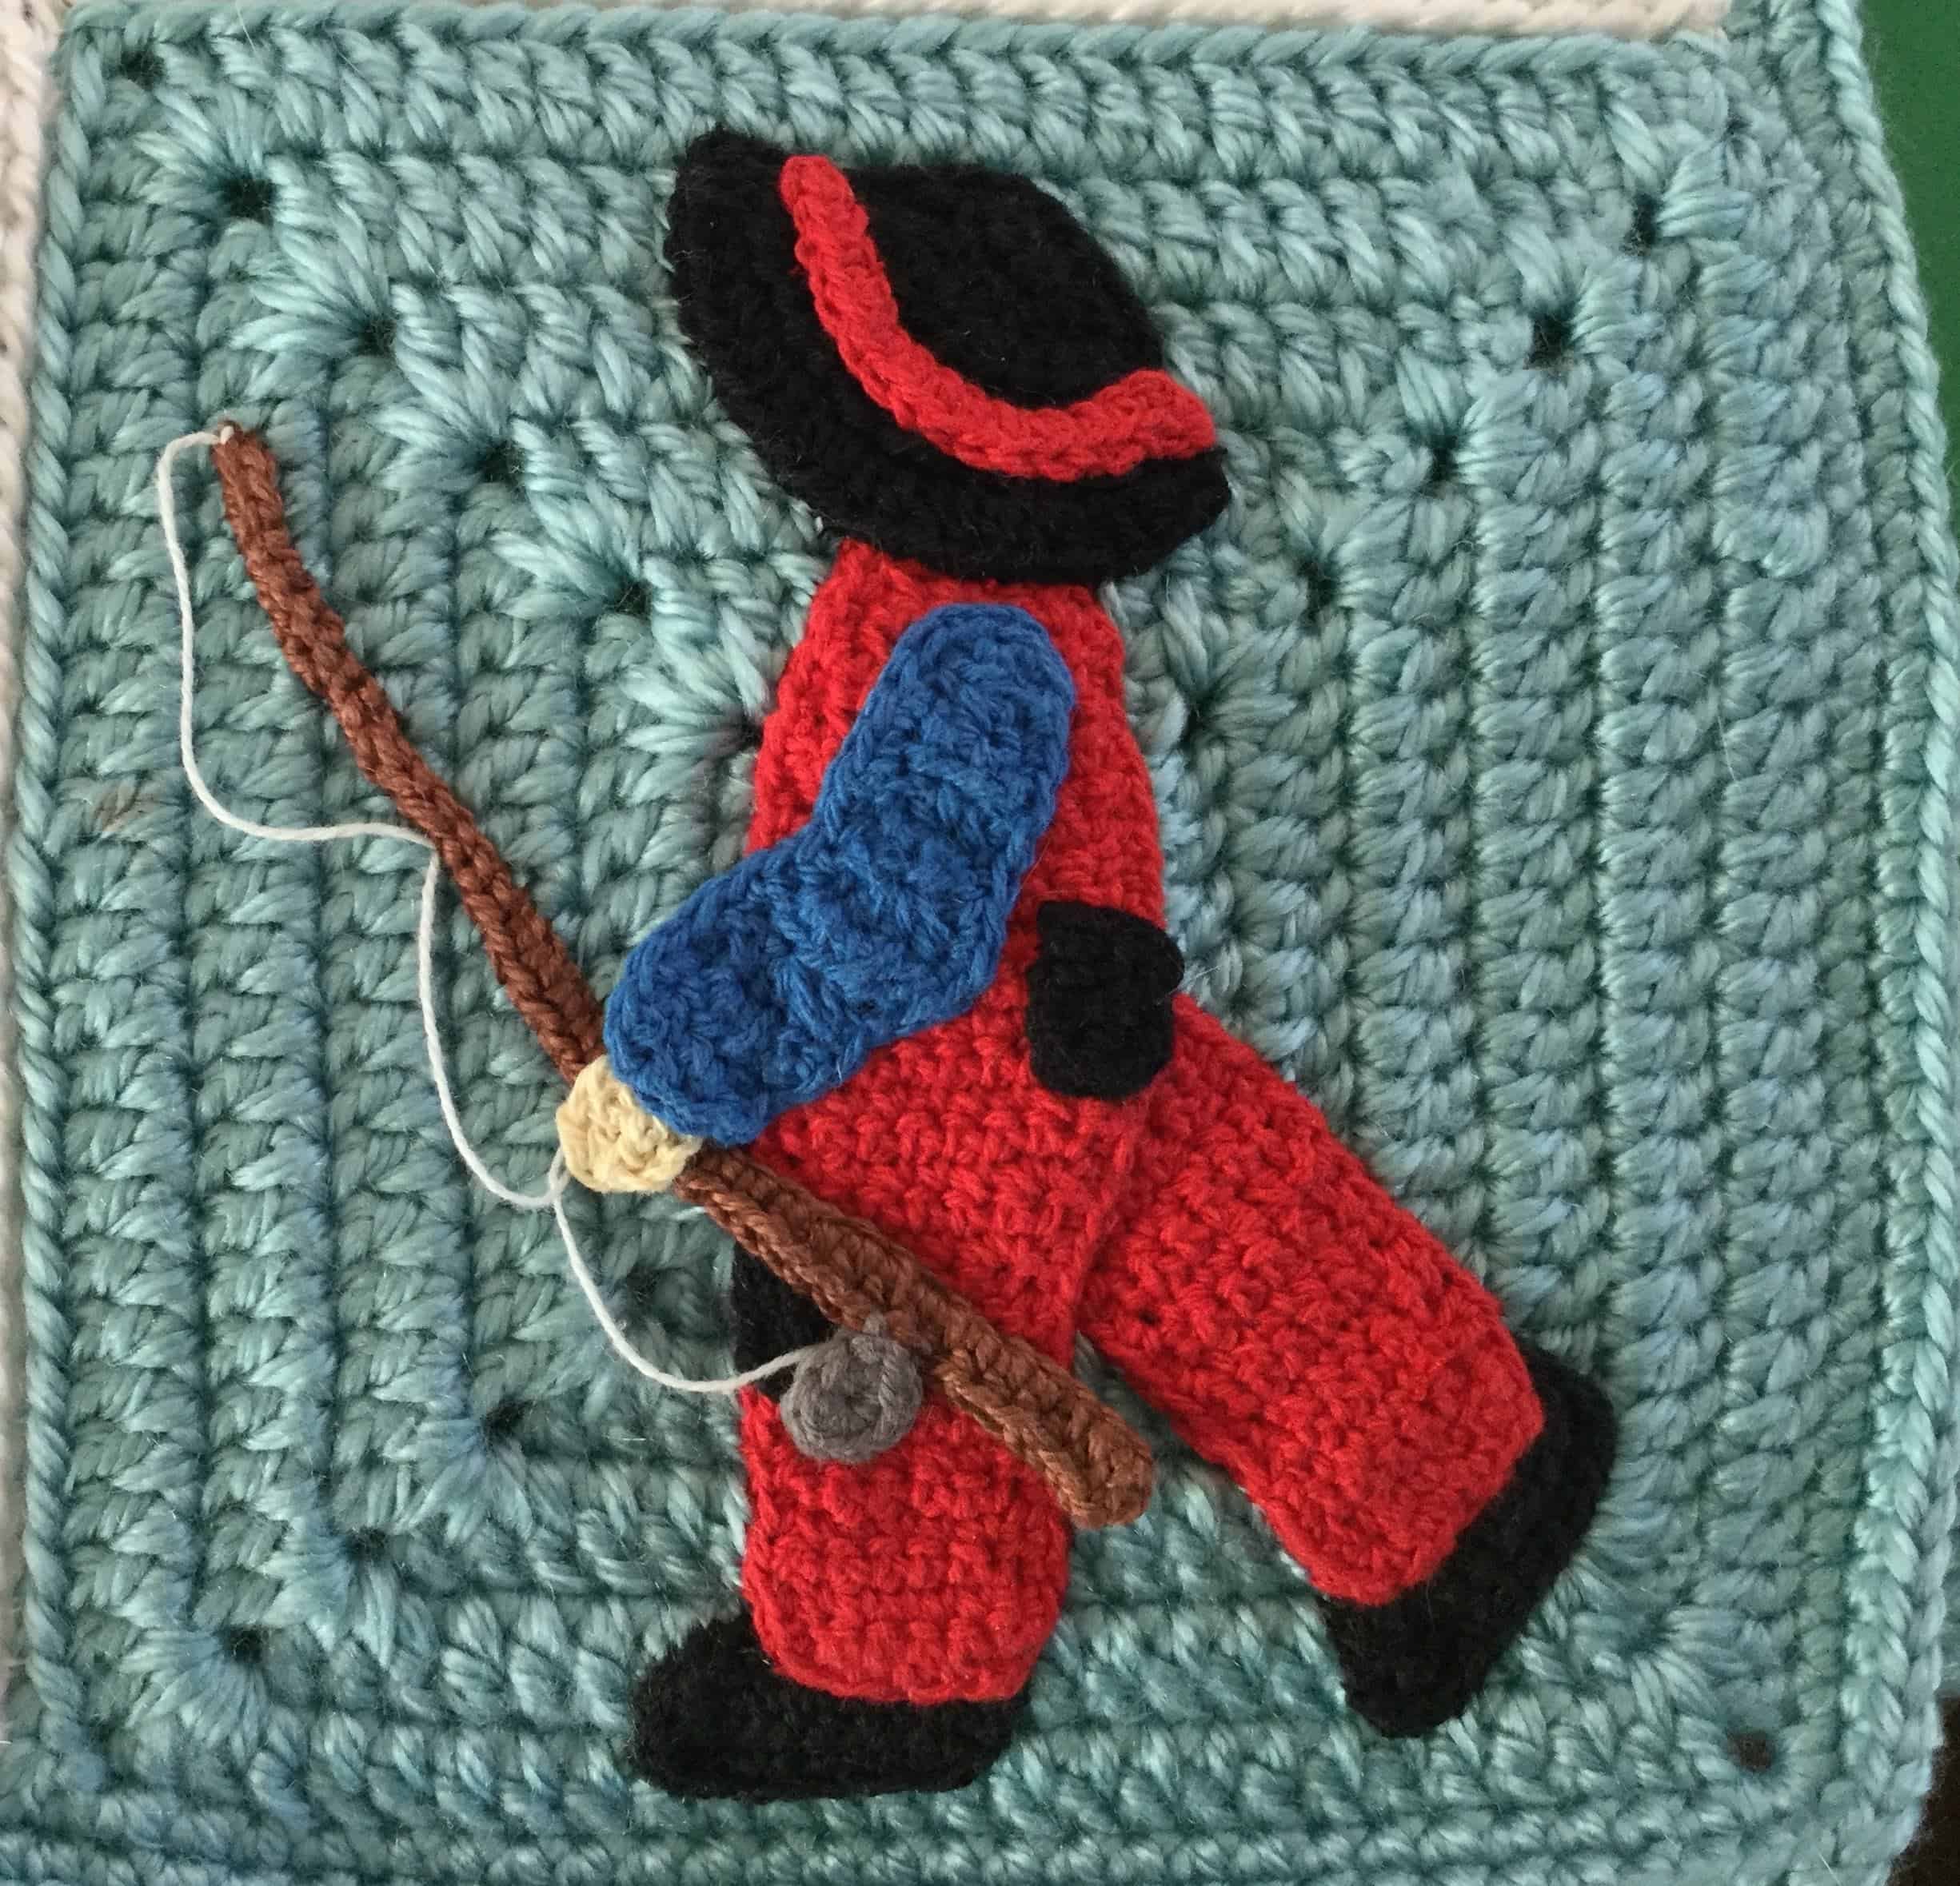 Crochet Edging For Baby Blanket Boy With Fishing Rod Square